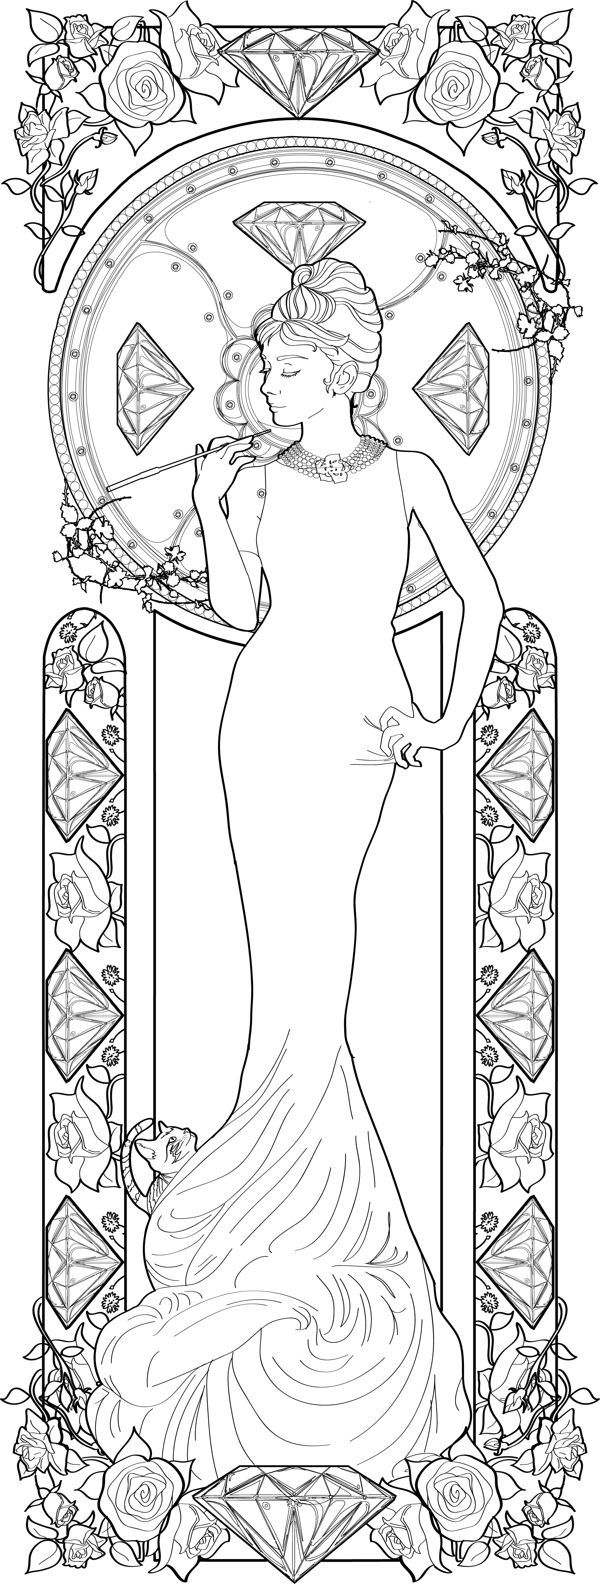 Coloring pages with quotes - Alphonse Mucha Coloring Pages Audrey Hepburn By Azael Olmosholiday Quotes Hepburn Sketches Hepburn